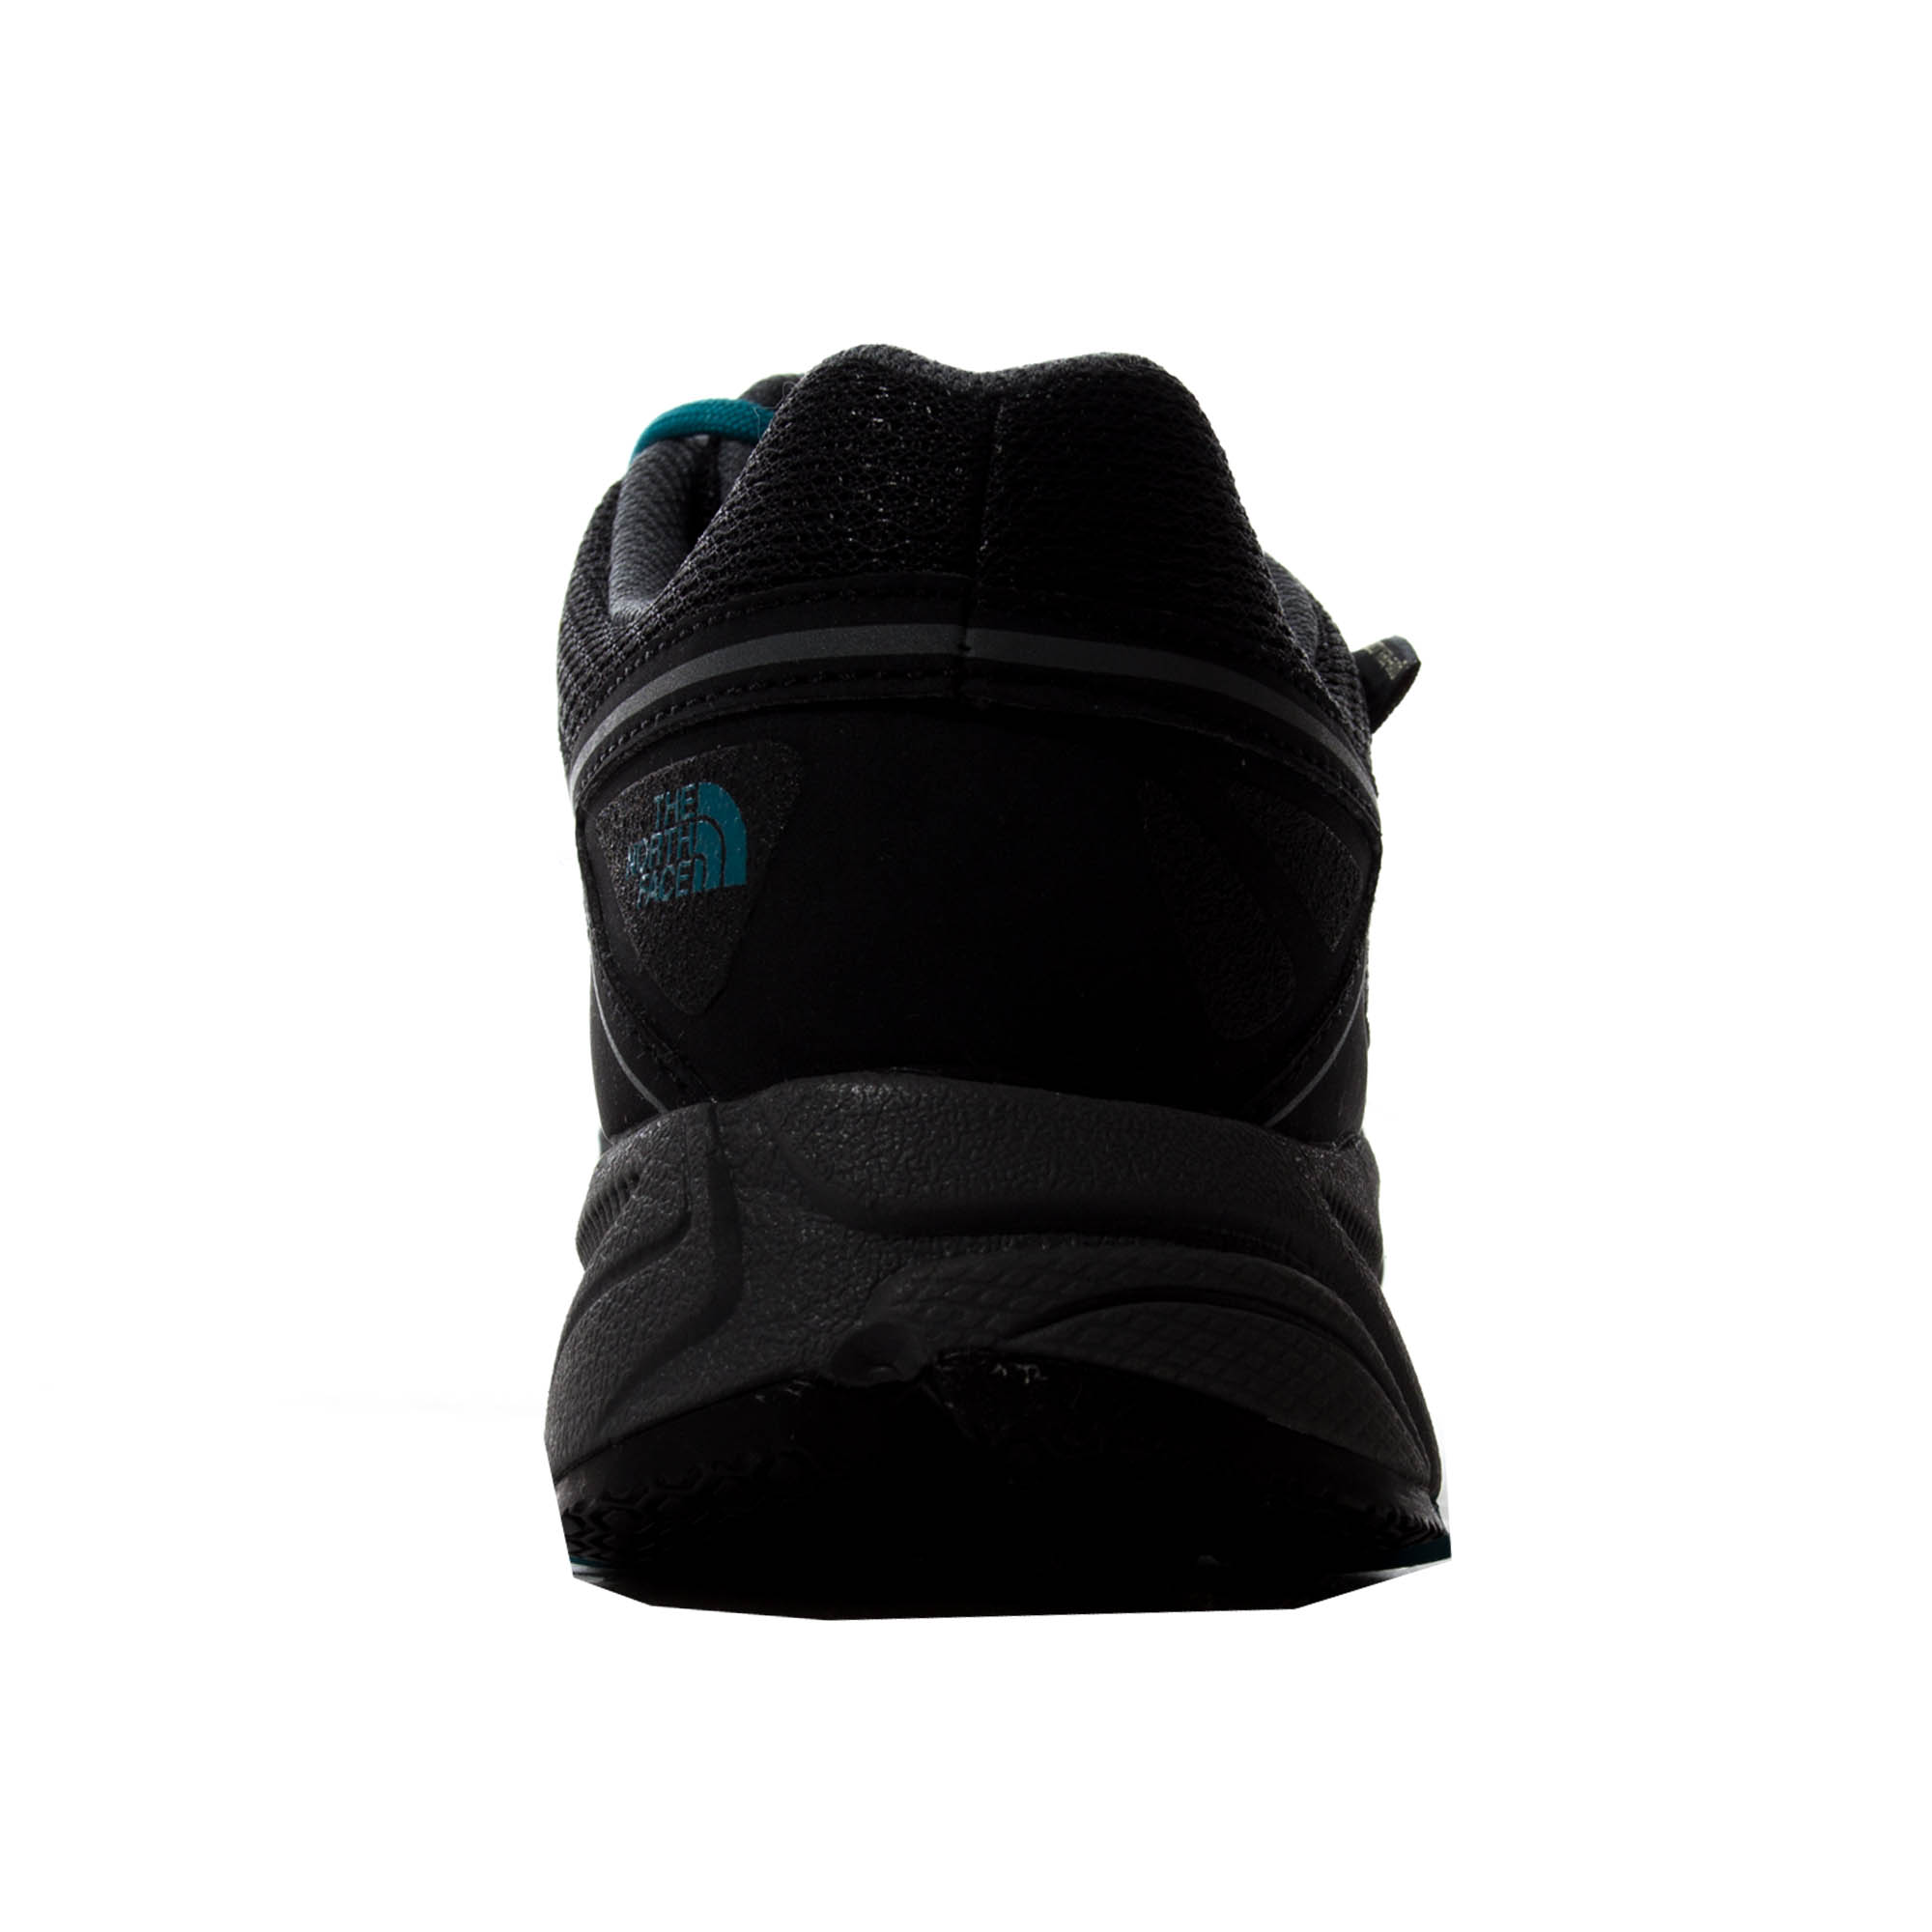 thumbnail 10 - The North Face Storm Gore-Tex Mens Outdoor Walking Hiking Shoe Black/Blue